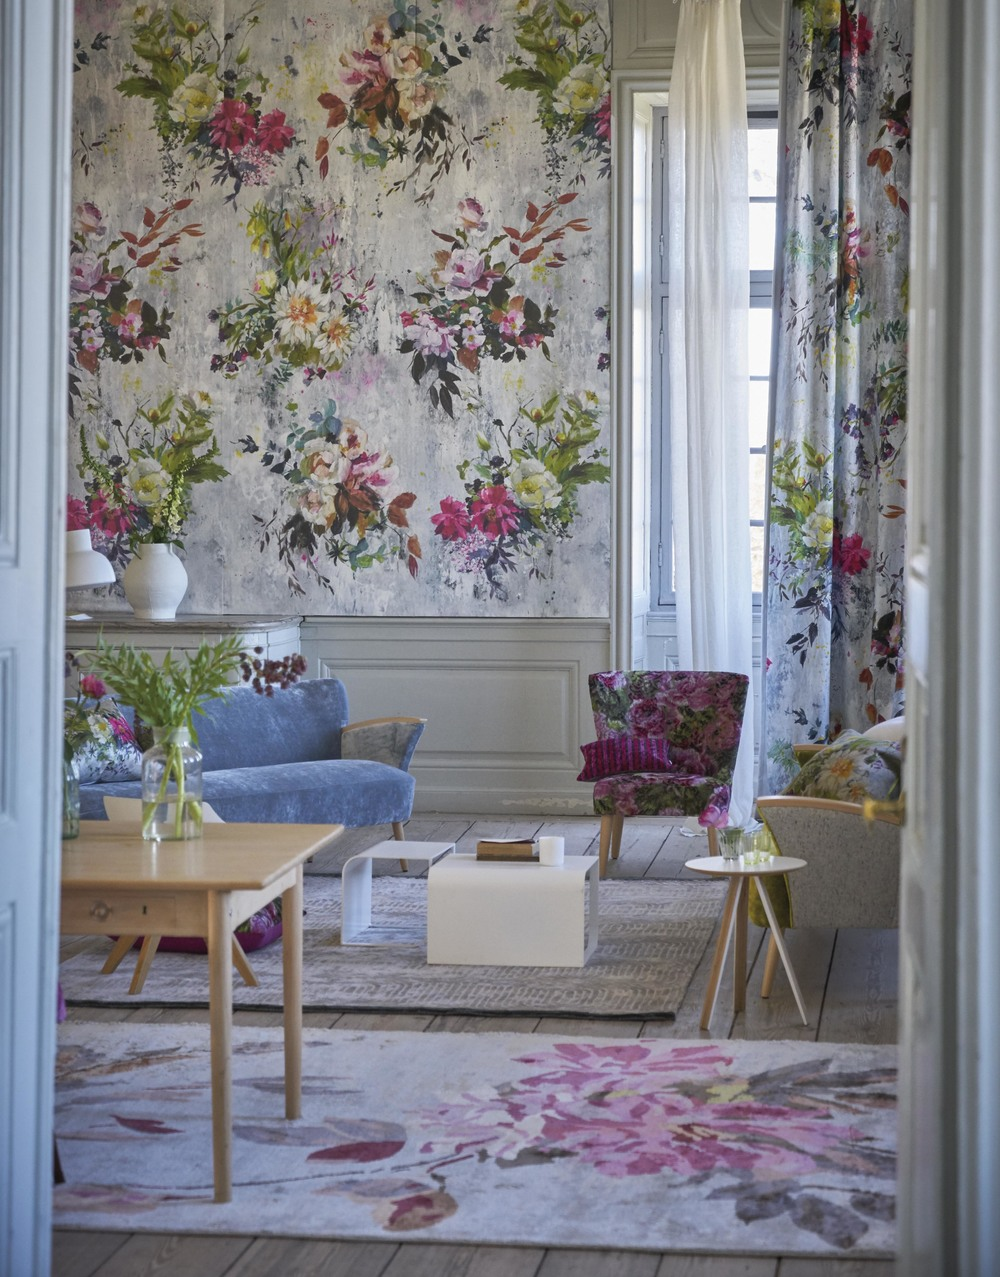 DESIGNERS GUILD FABRIC, WALLPAPER, TRIMMINGS, RUGS & ACCESSORIES